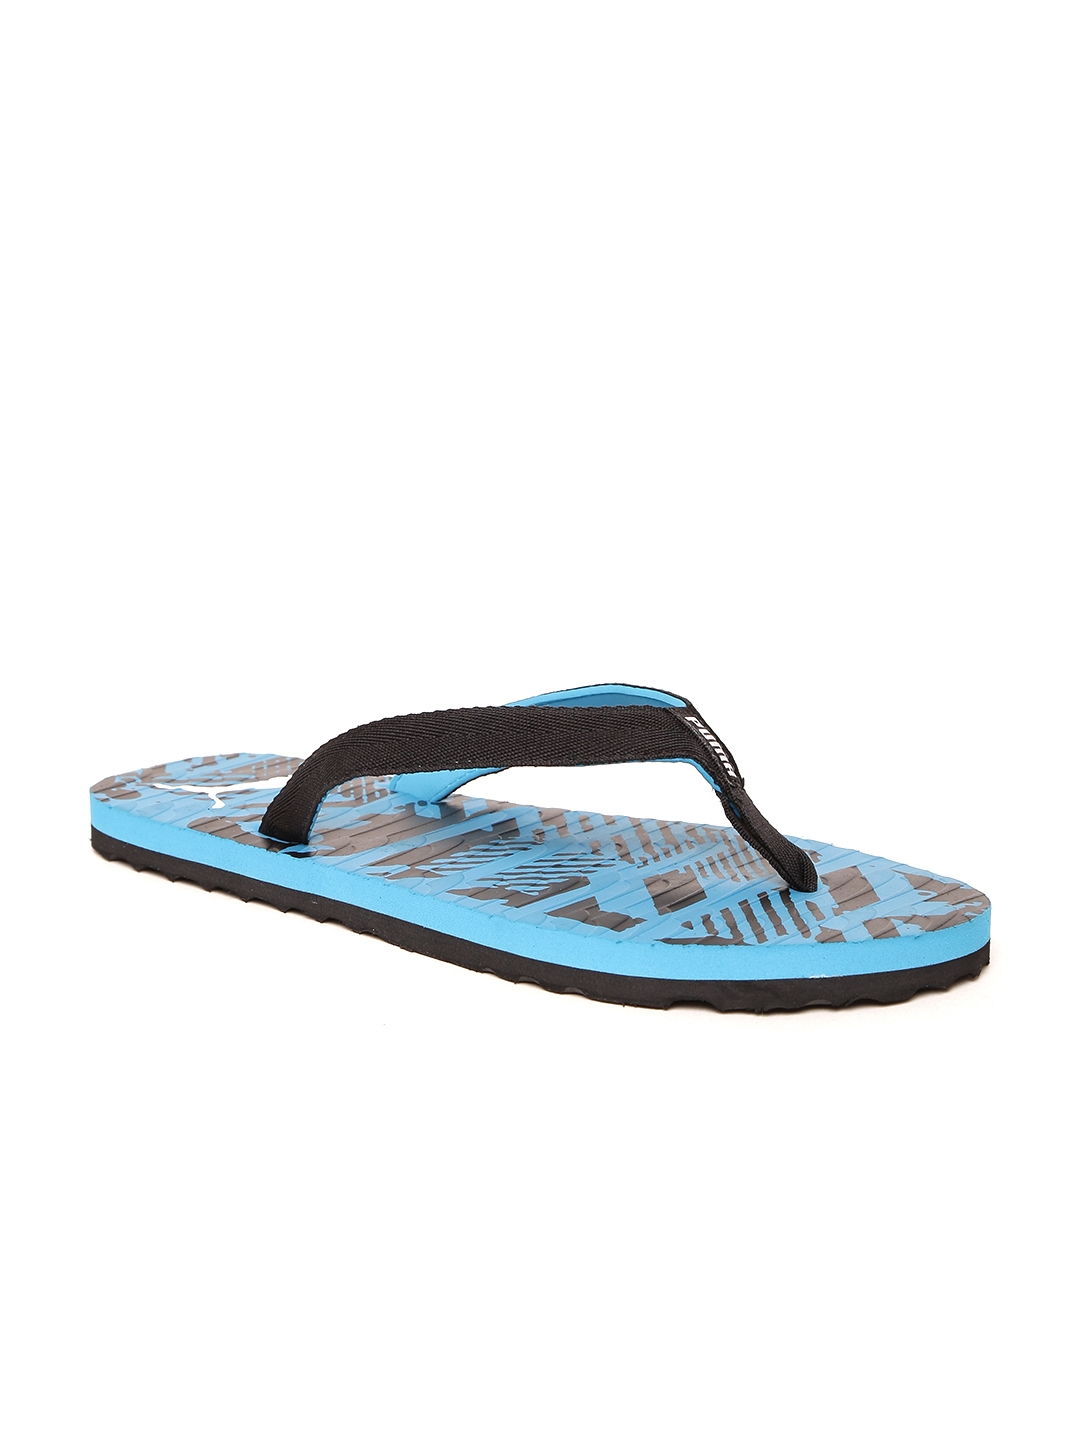 c0773156dcea Buy Puma Unisex Blue   Black Mykonos Graphic IDP Printed Thong Flip ...